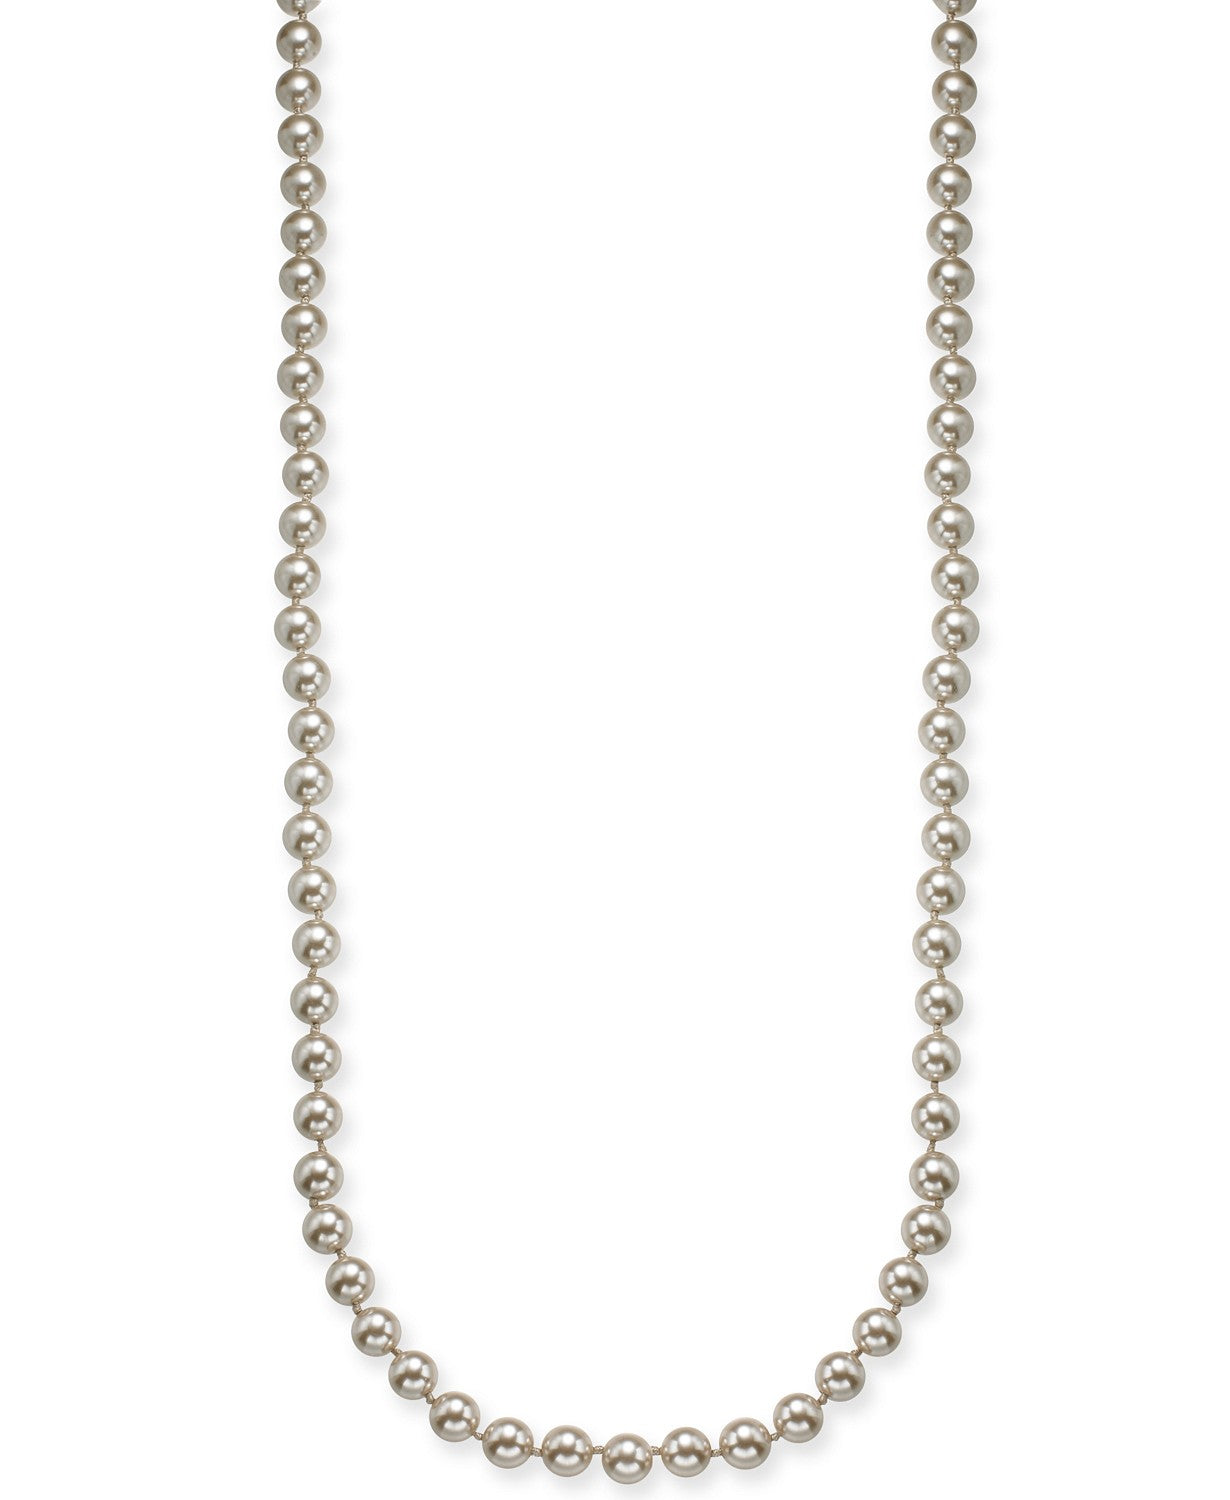 "Charter Club Silver-Tone Imitation Pearl Necklace, 42"" + 2"""